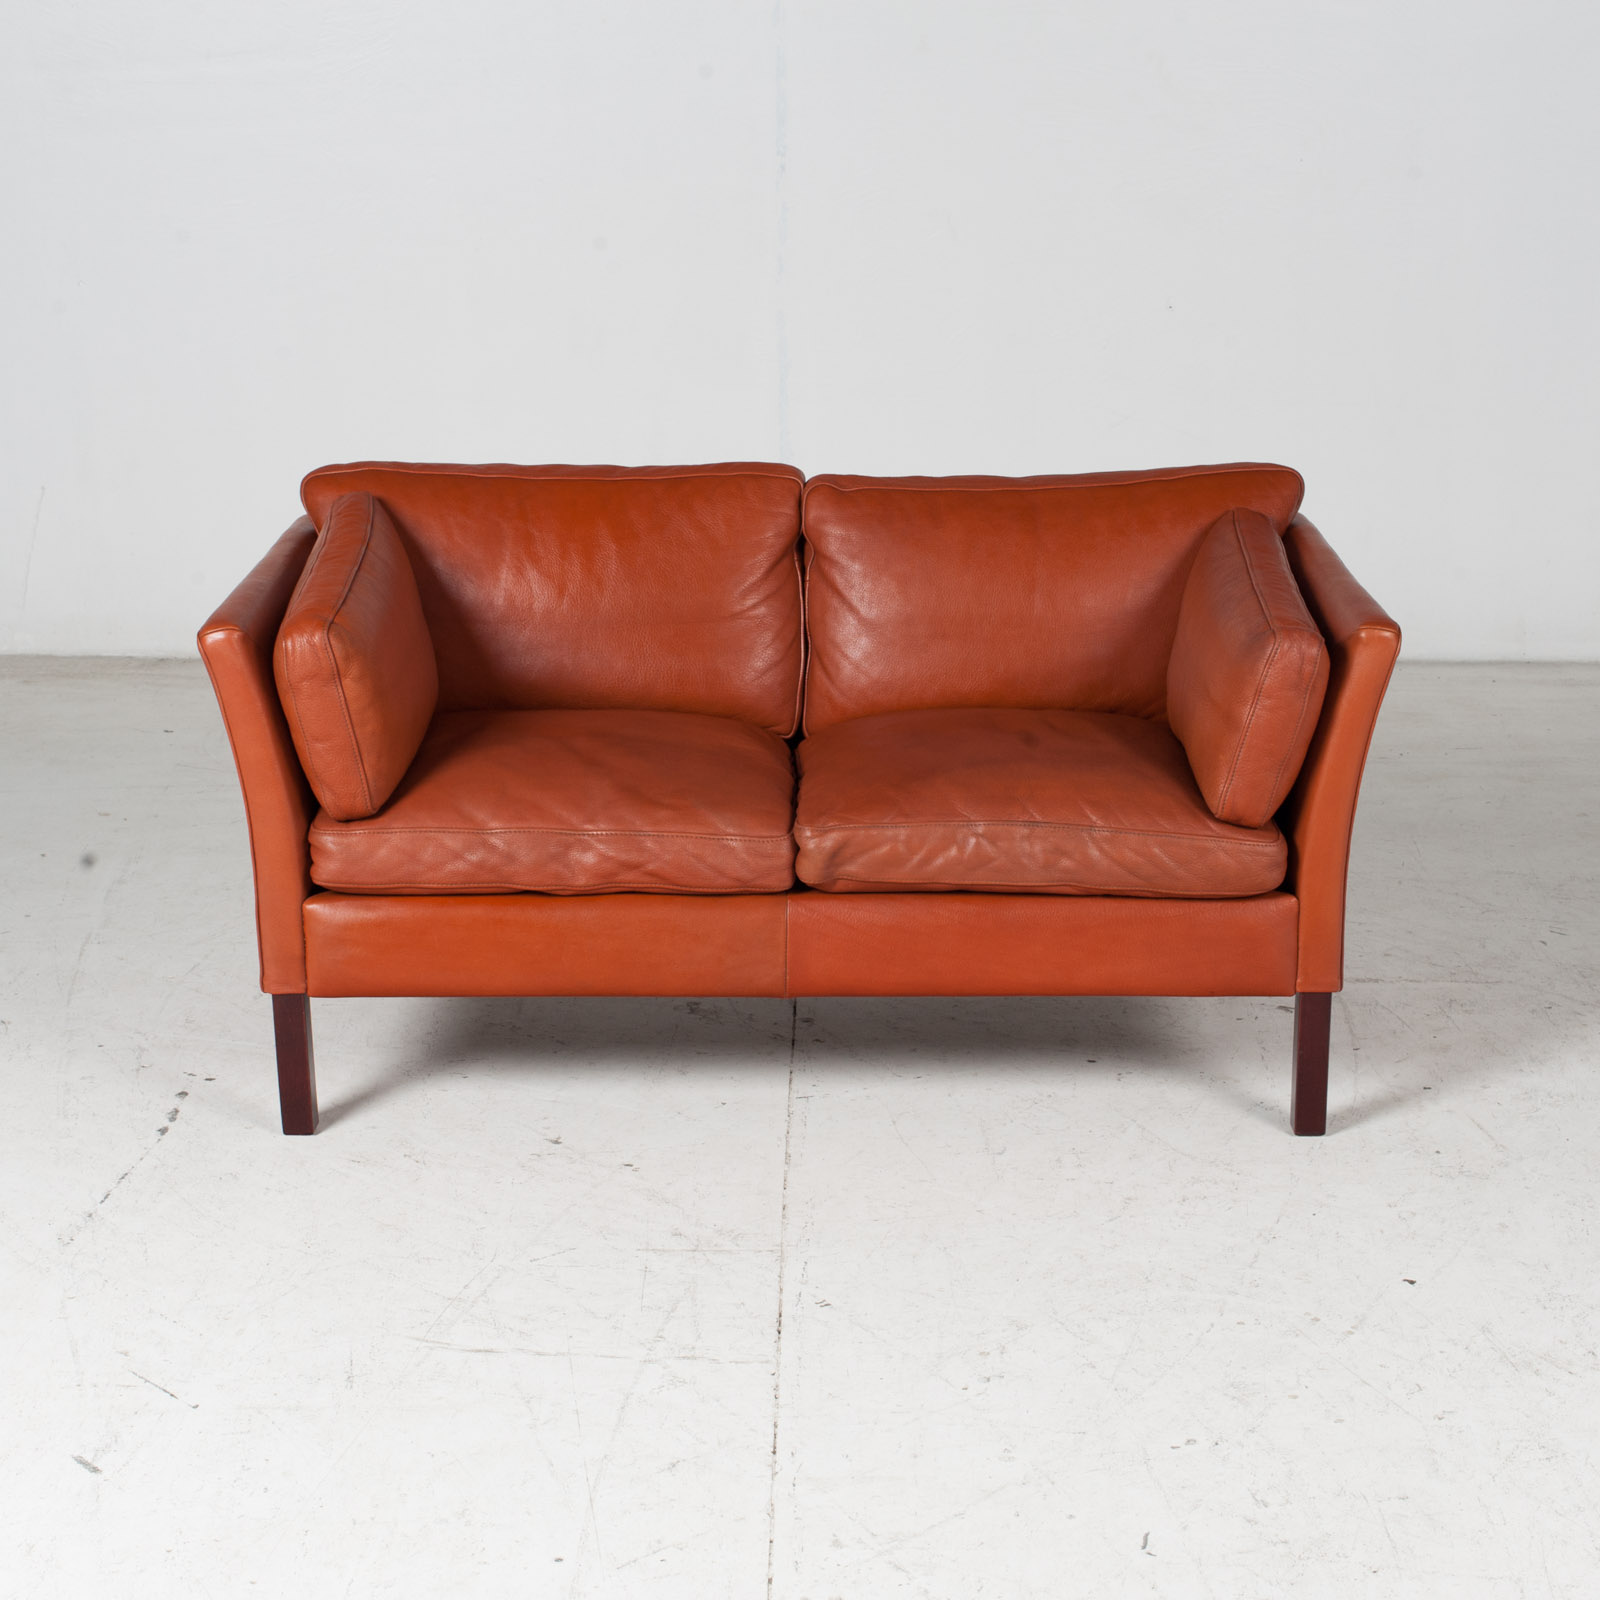 2 Seat Sofa By Stouby In Tan Leather, 1960s, Denmark 2